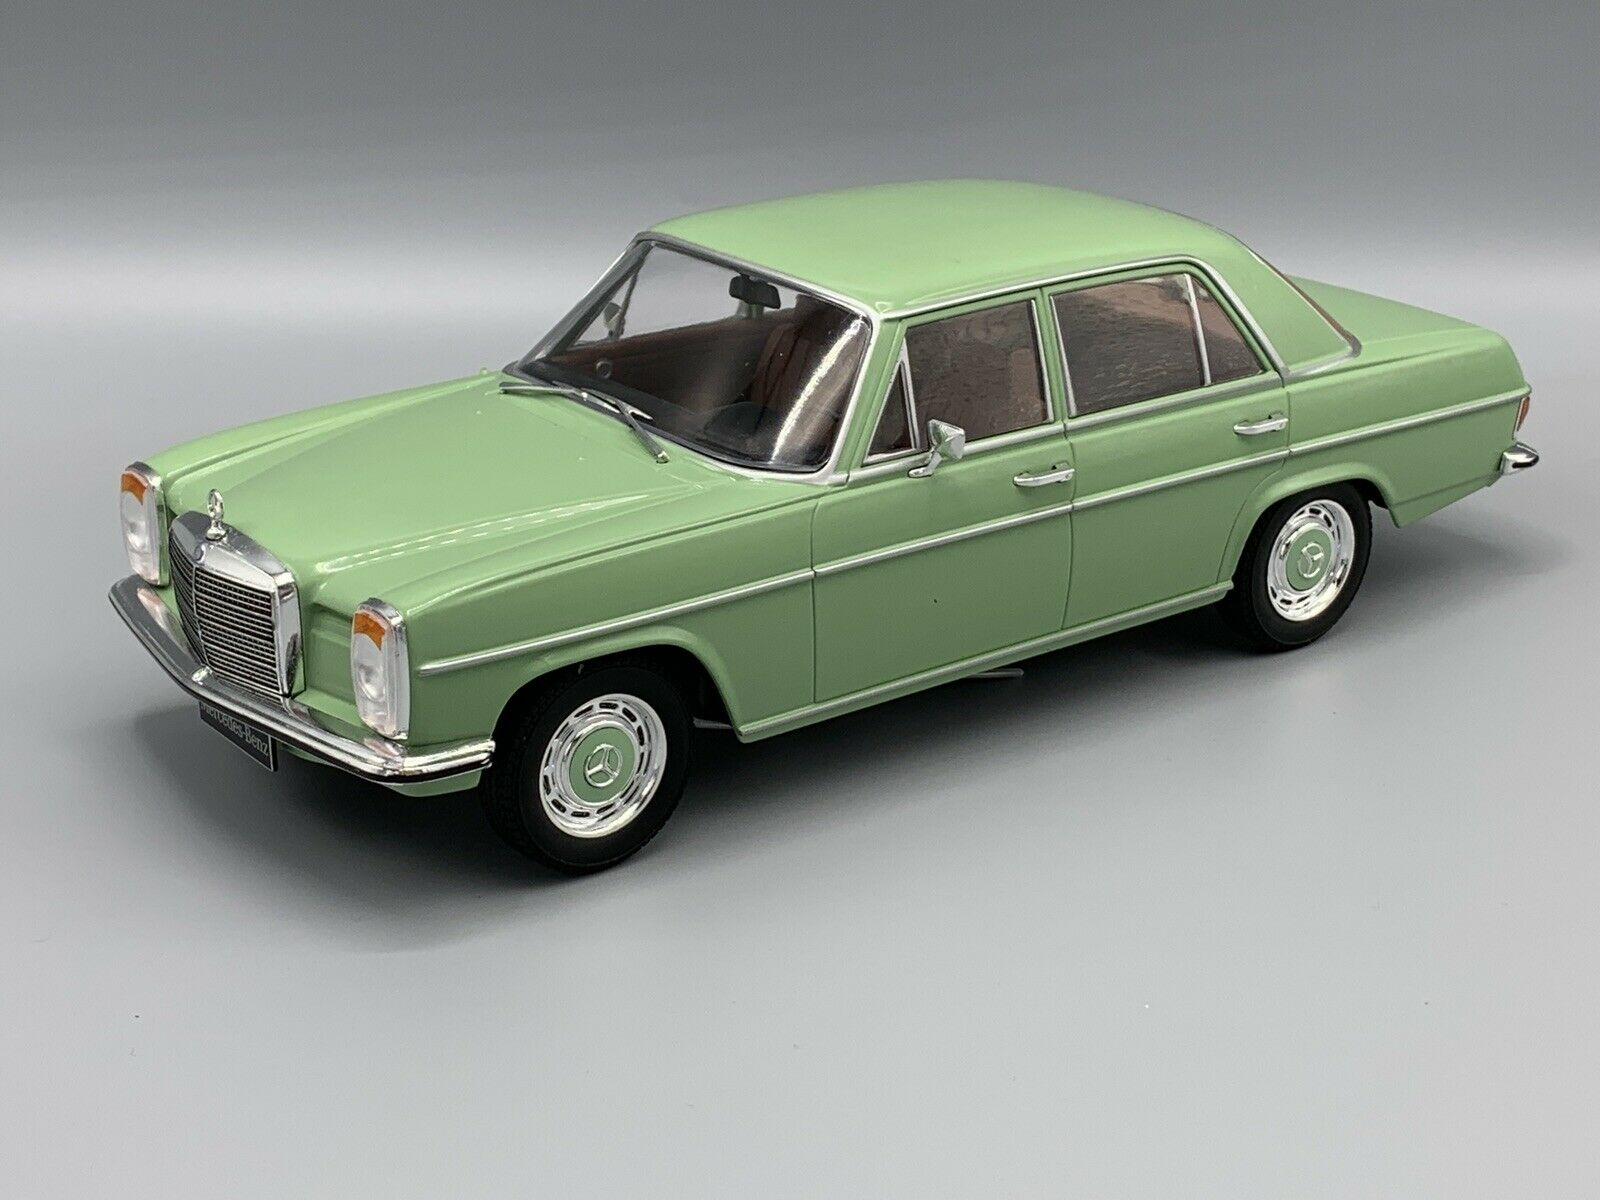 Mercedes Benz 220 D  8 (W115) 1972  hellgreen  1 18 MCG 18116  NEW